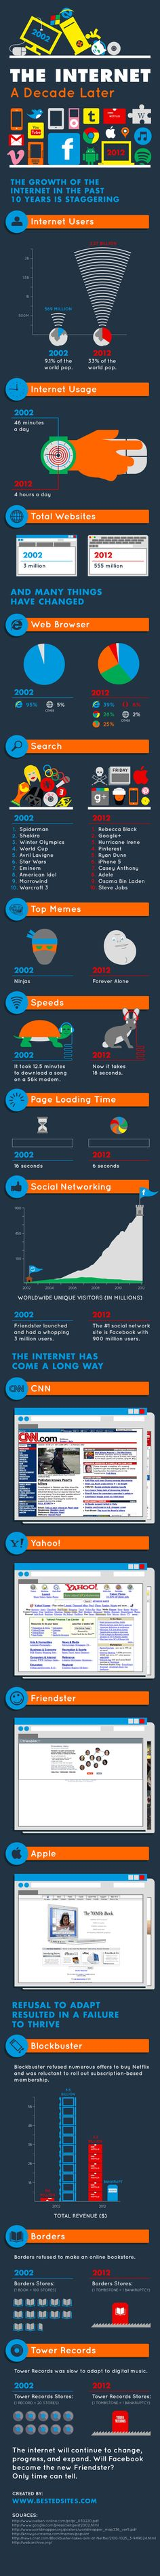 Incredible to see how far the internet as come... Internet Decade Later Infographic #smm #marketing #freestuffs